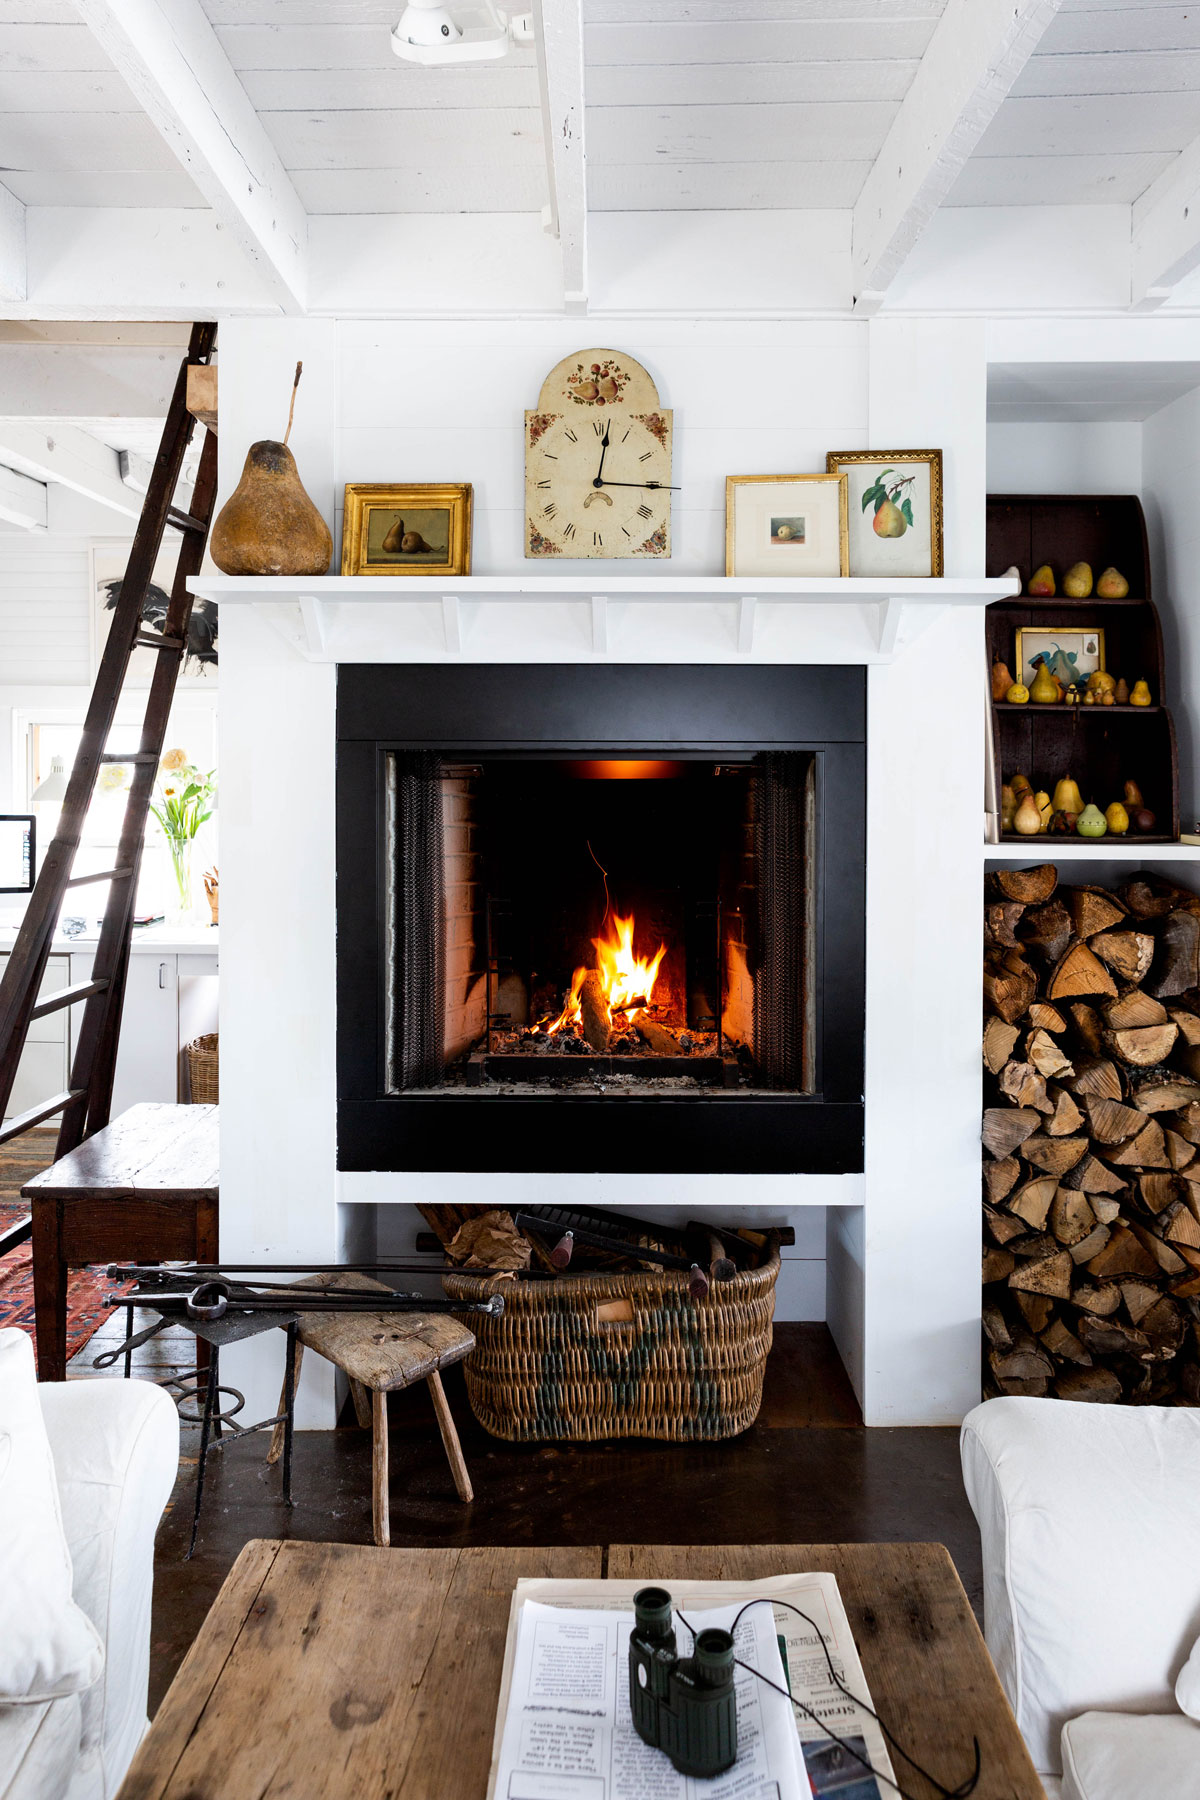 A good fireplace and a hefty woodpile are household requirements in Maine, even on midsummer nights. That's why Paul planned for a built-in firewood niche. Fuel for the fire is always within reach.